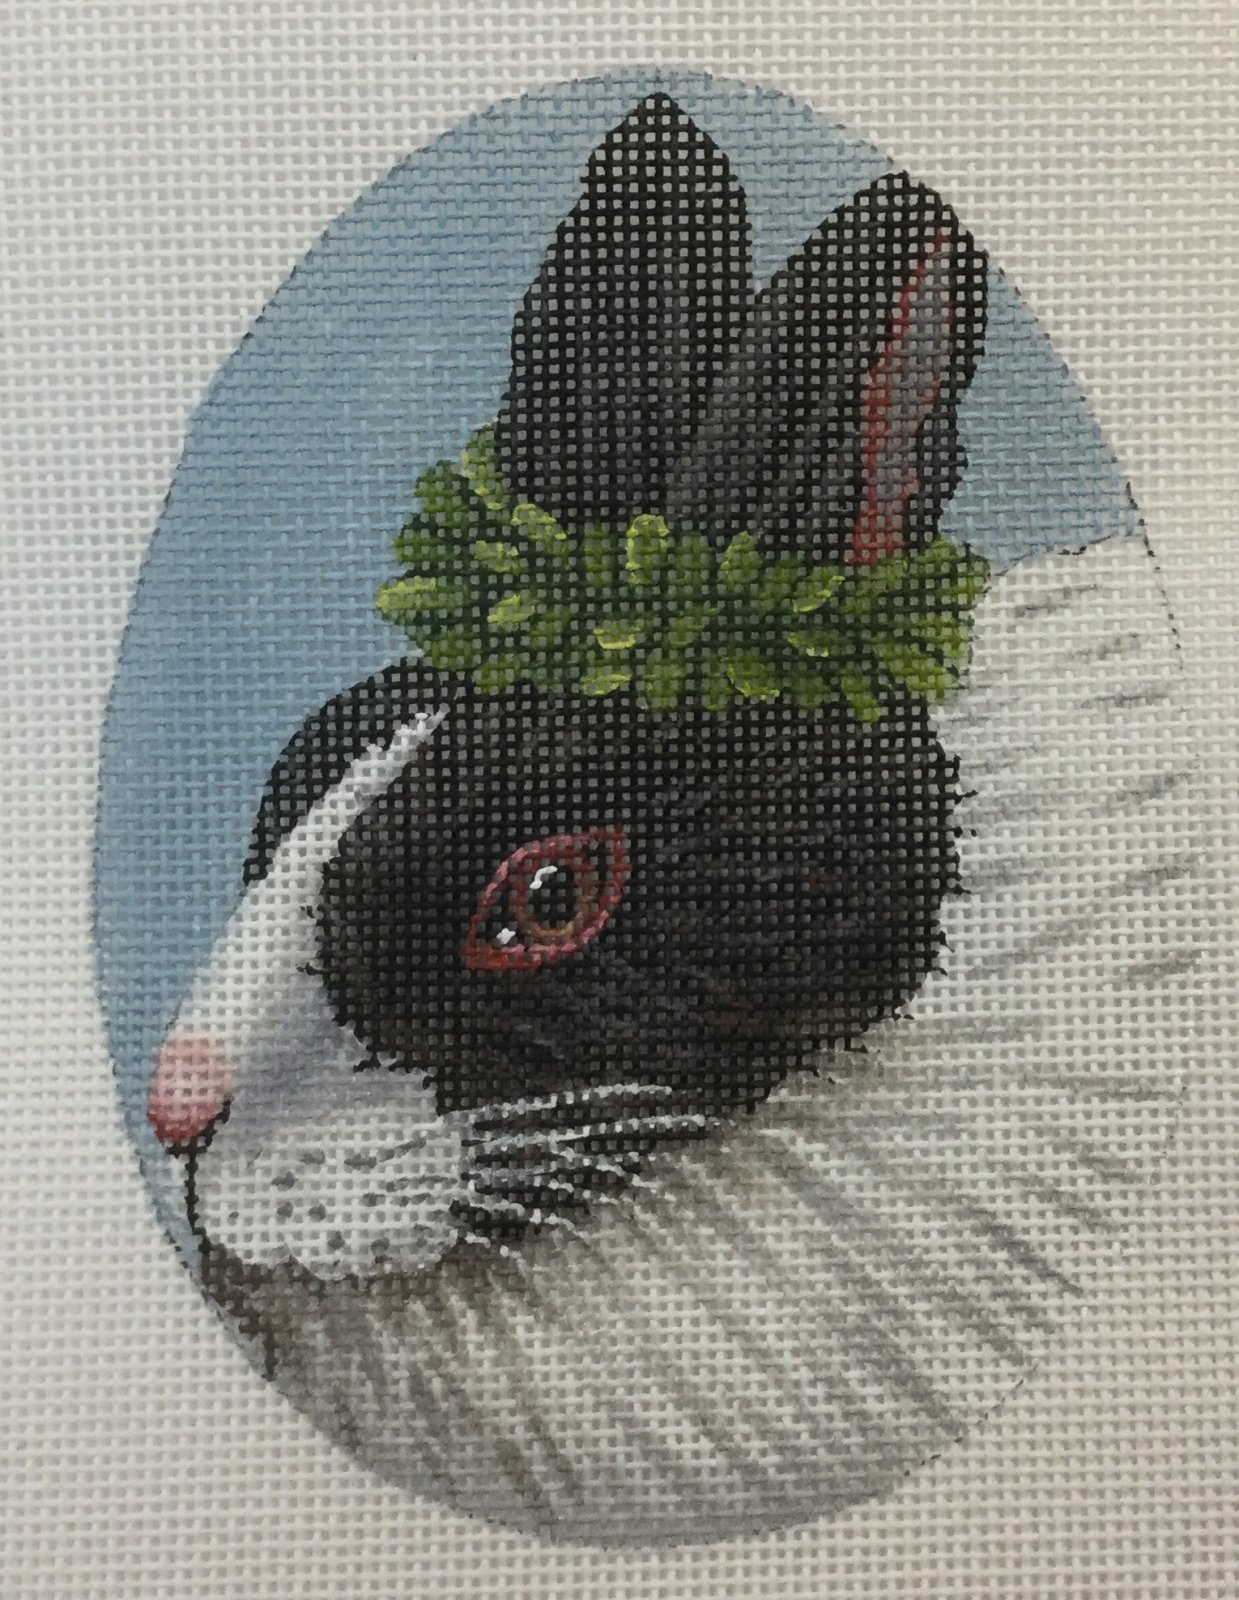 Bess the Bun,18ct.,5x5